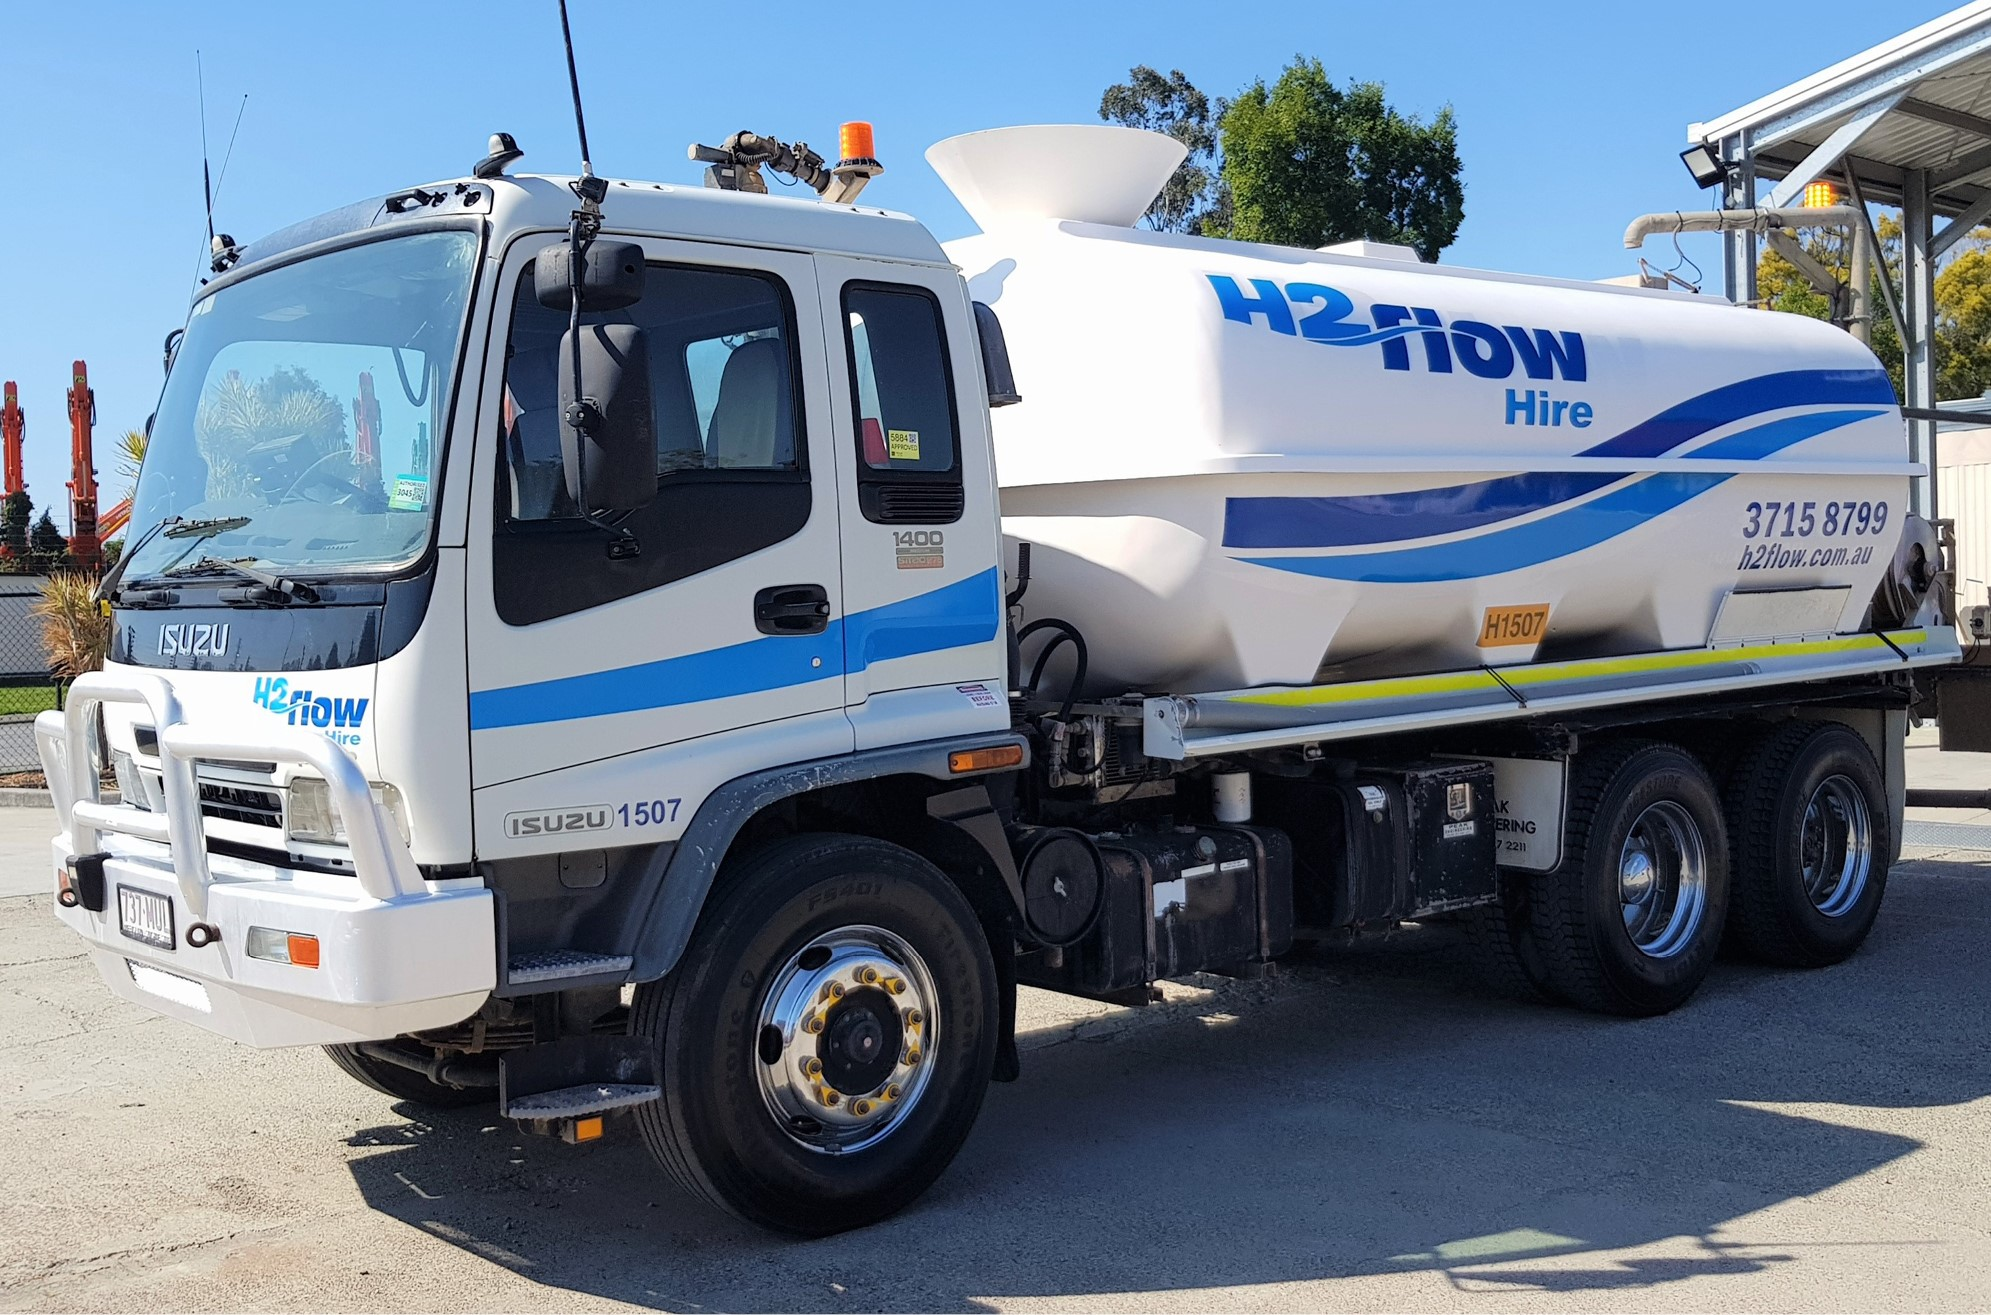 H2flow Hire truck after cleaning from the workshop team and branding from Saxon Signs.